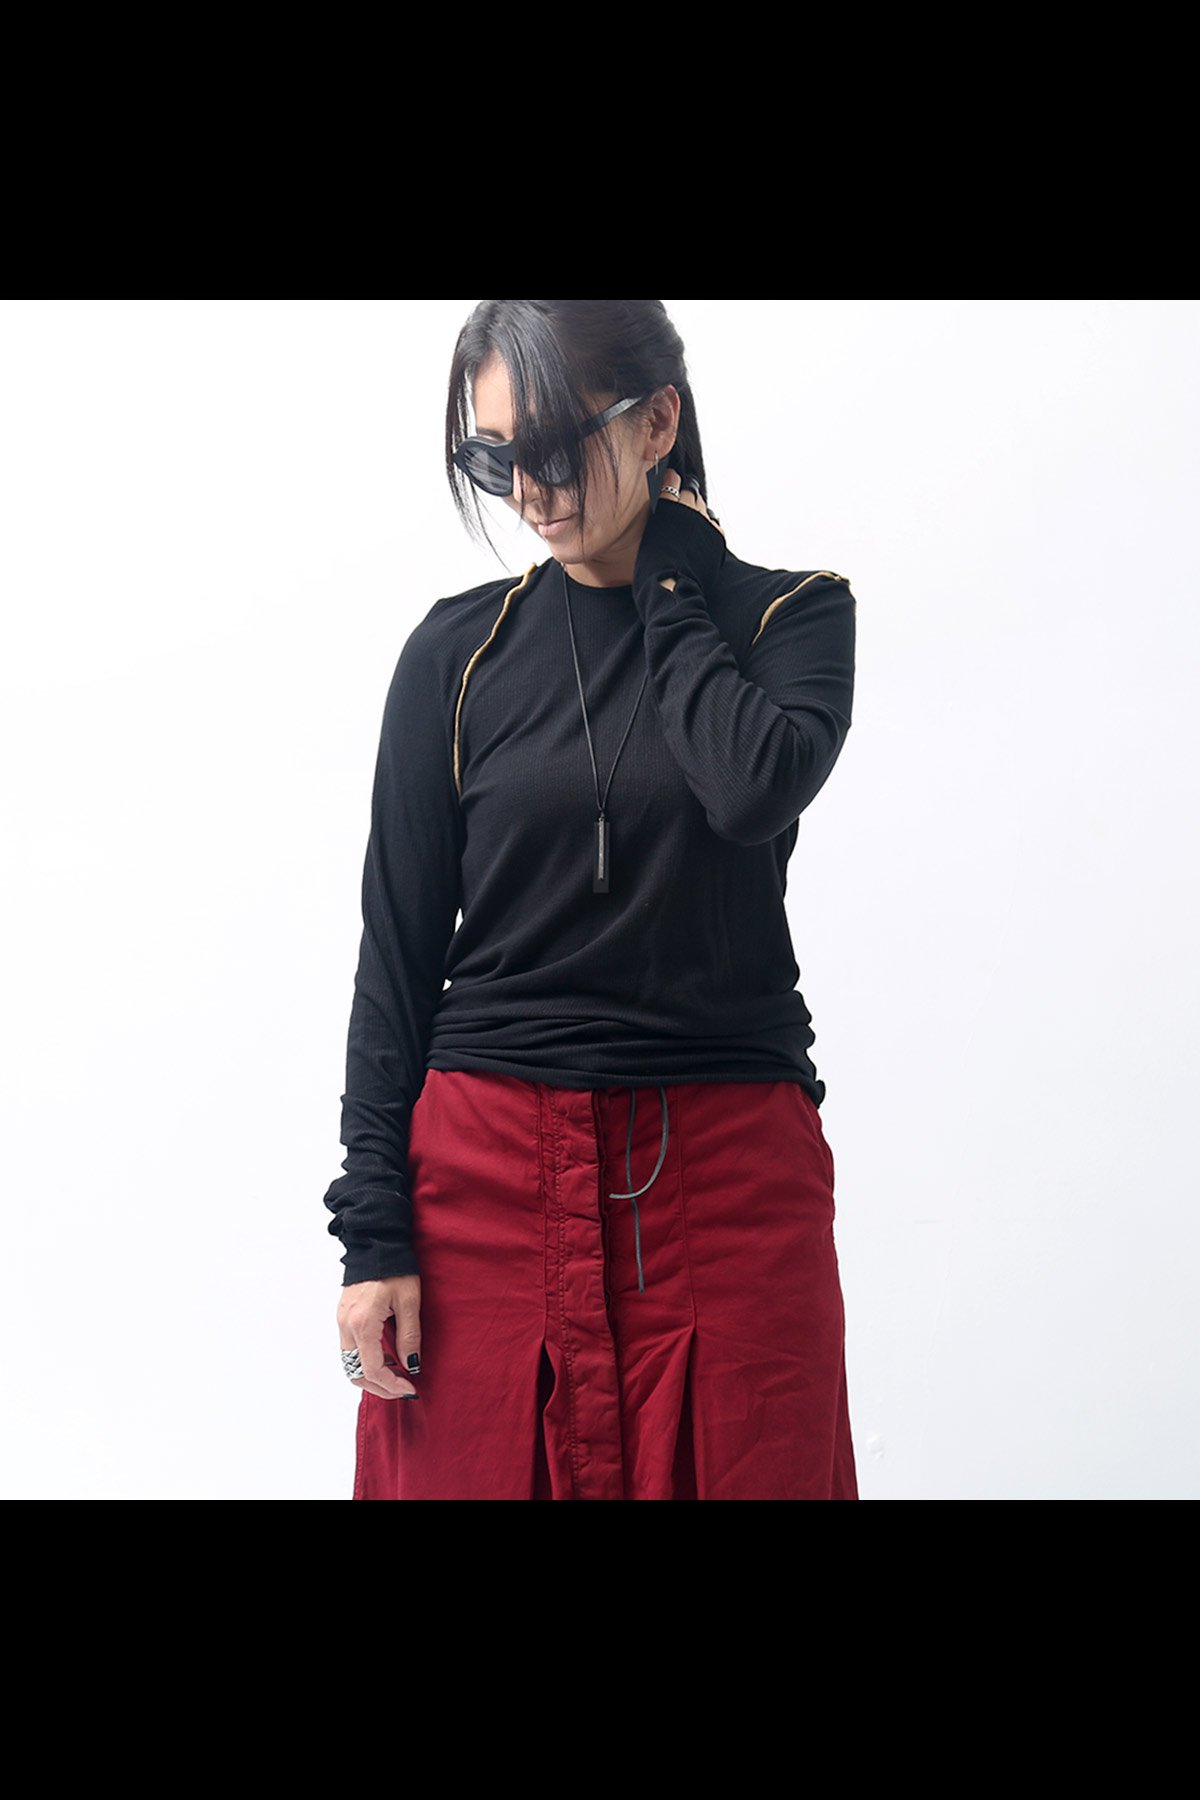 NOSTRASANTISSIMA_CREW NECK KNIT TOPS TS08_BLACK